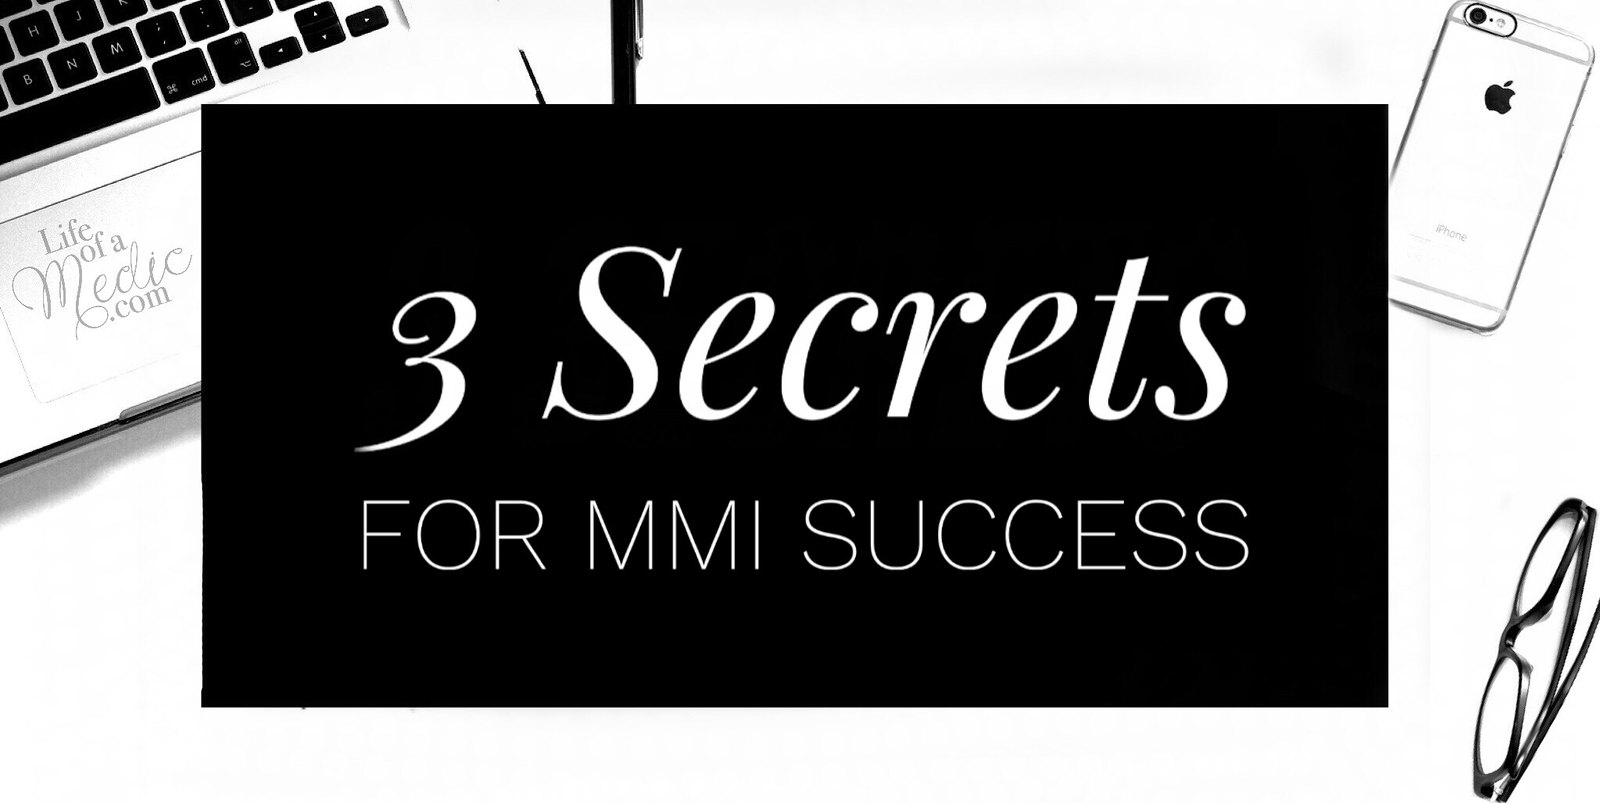 3 secrets for MMI success